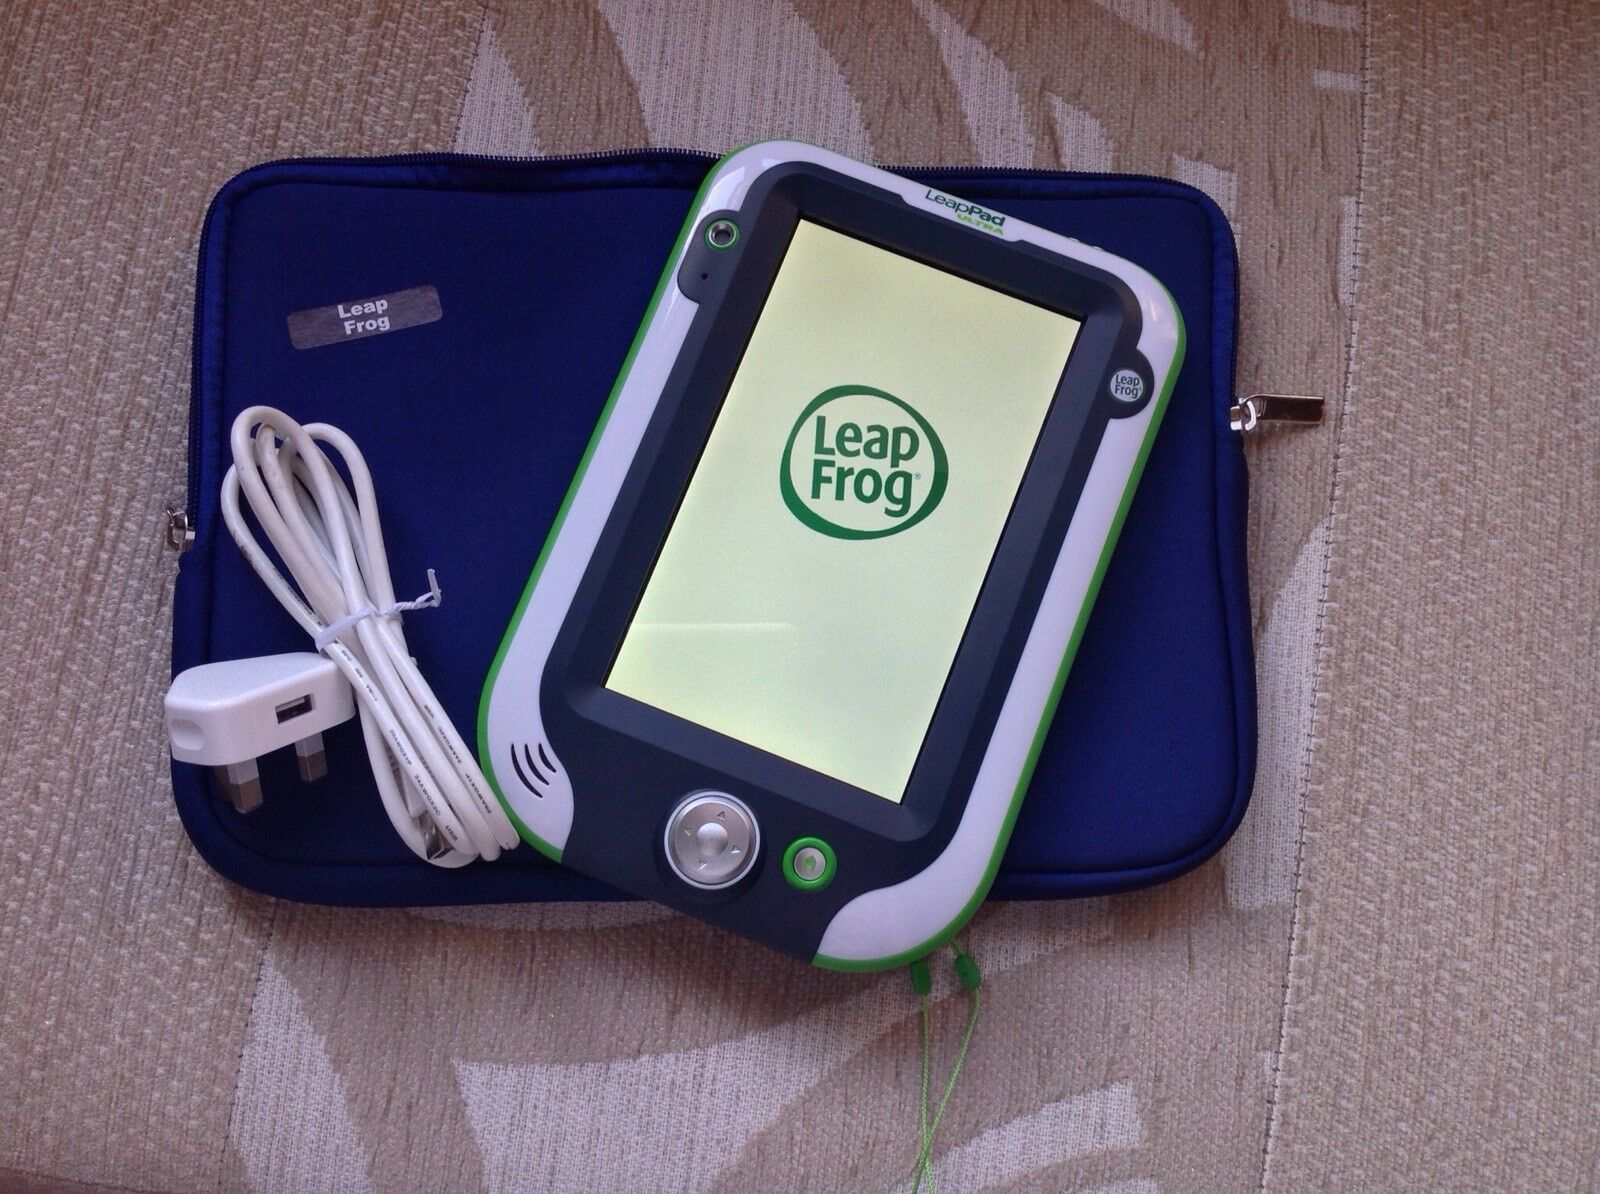 Leapfrog Leappad Ultra Choose Bag Colour bluee Or Pink. charger Cable..